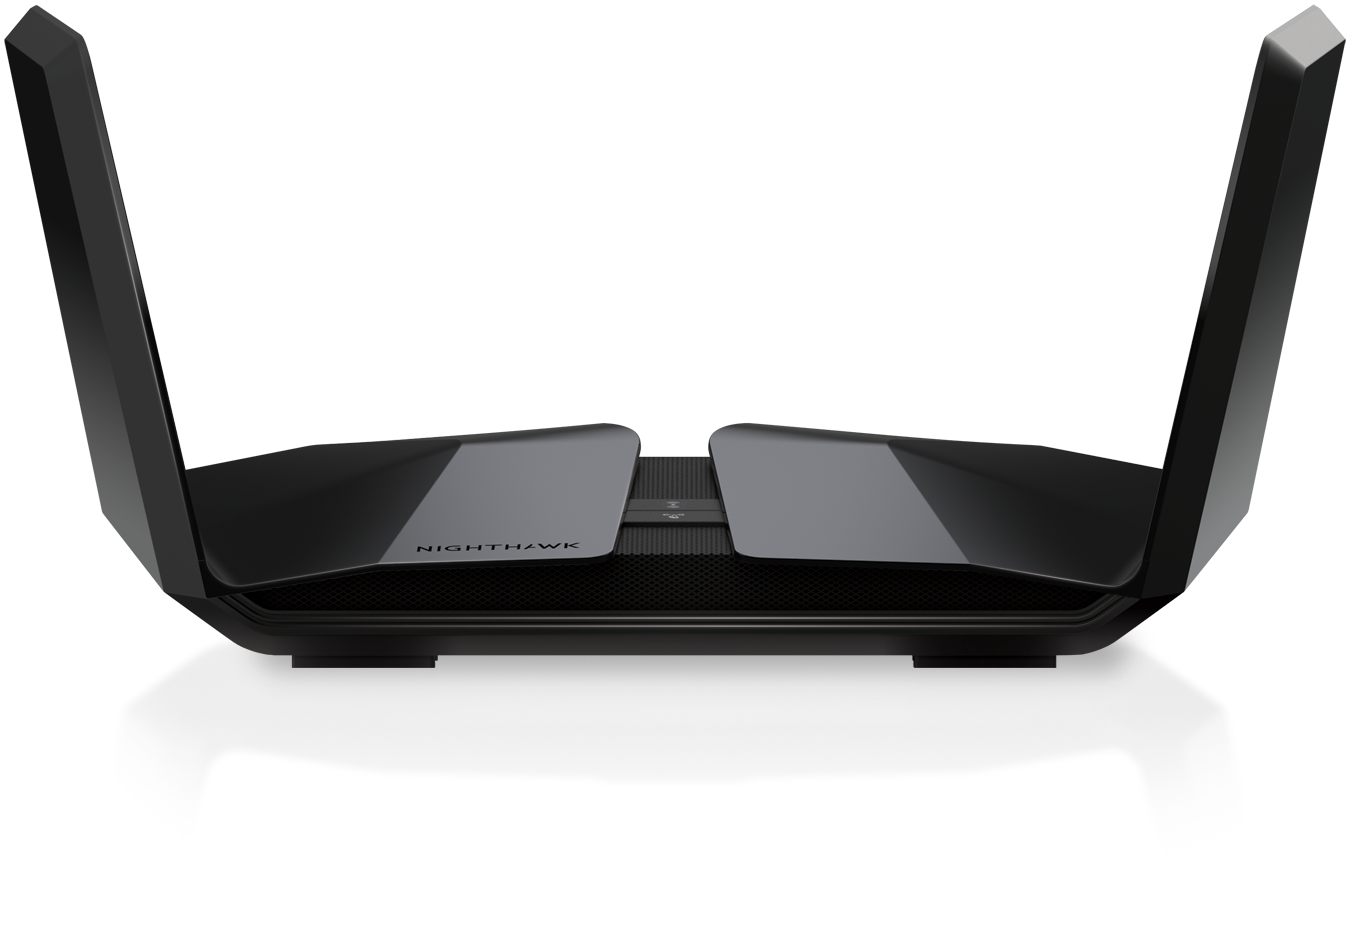 Nighthawk Tri-Band AX12 12-Stream WiFi 6 Router